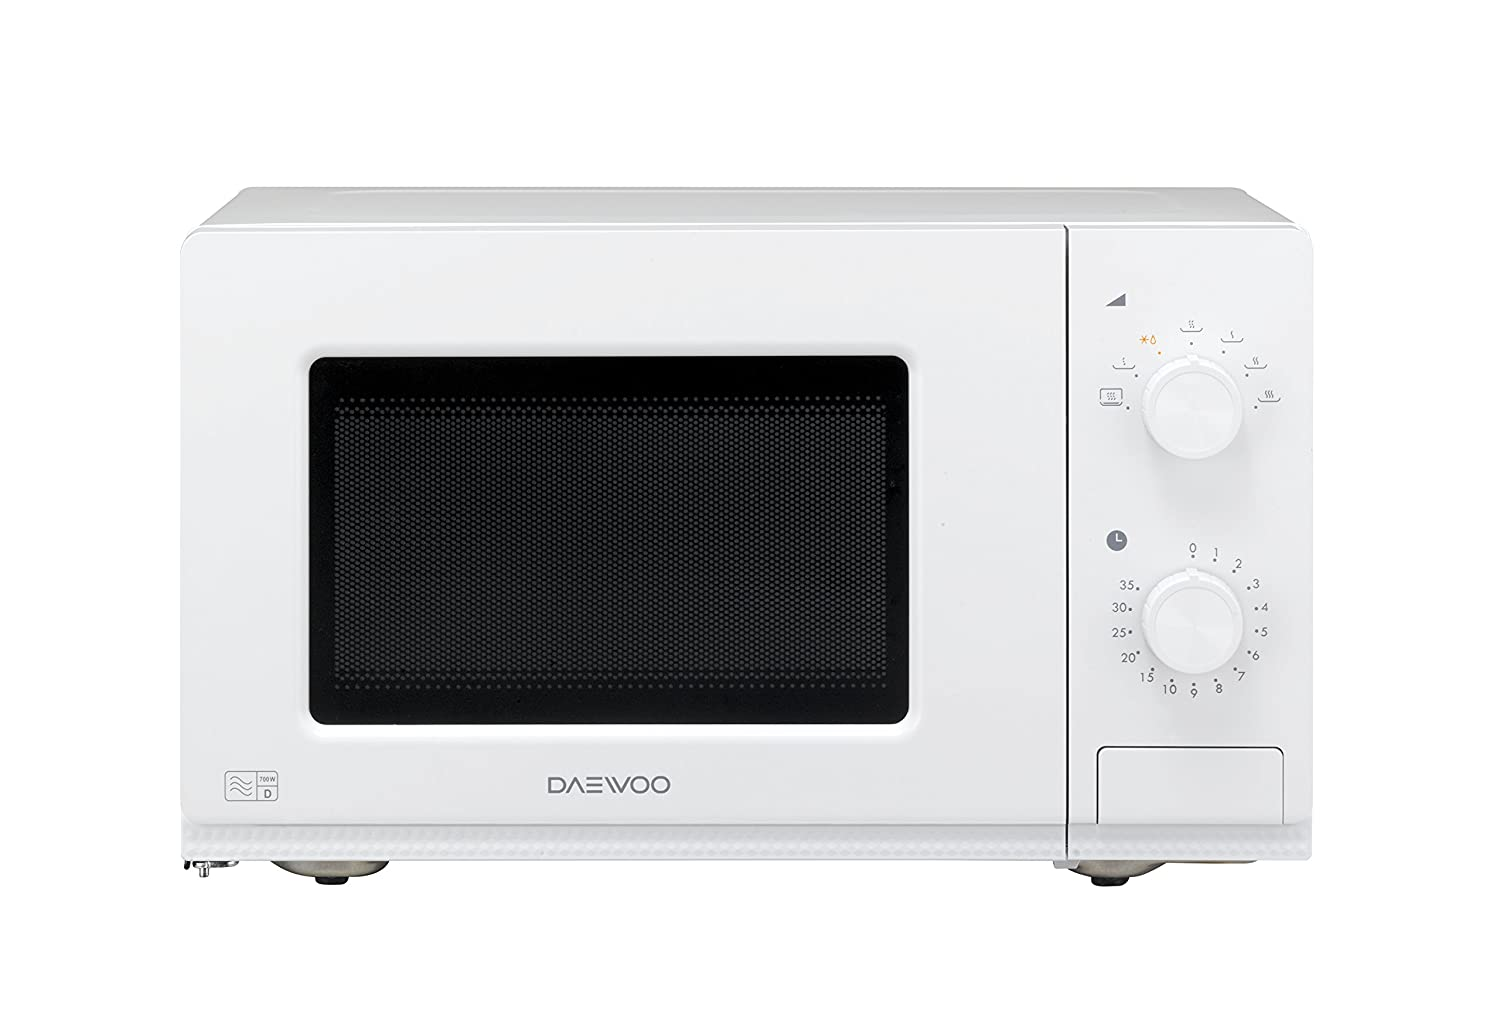 Daewoo Manual Microwave Oven, 20 Litre, White: Amazon.co.uk: Kitchen